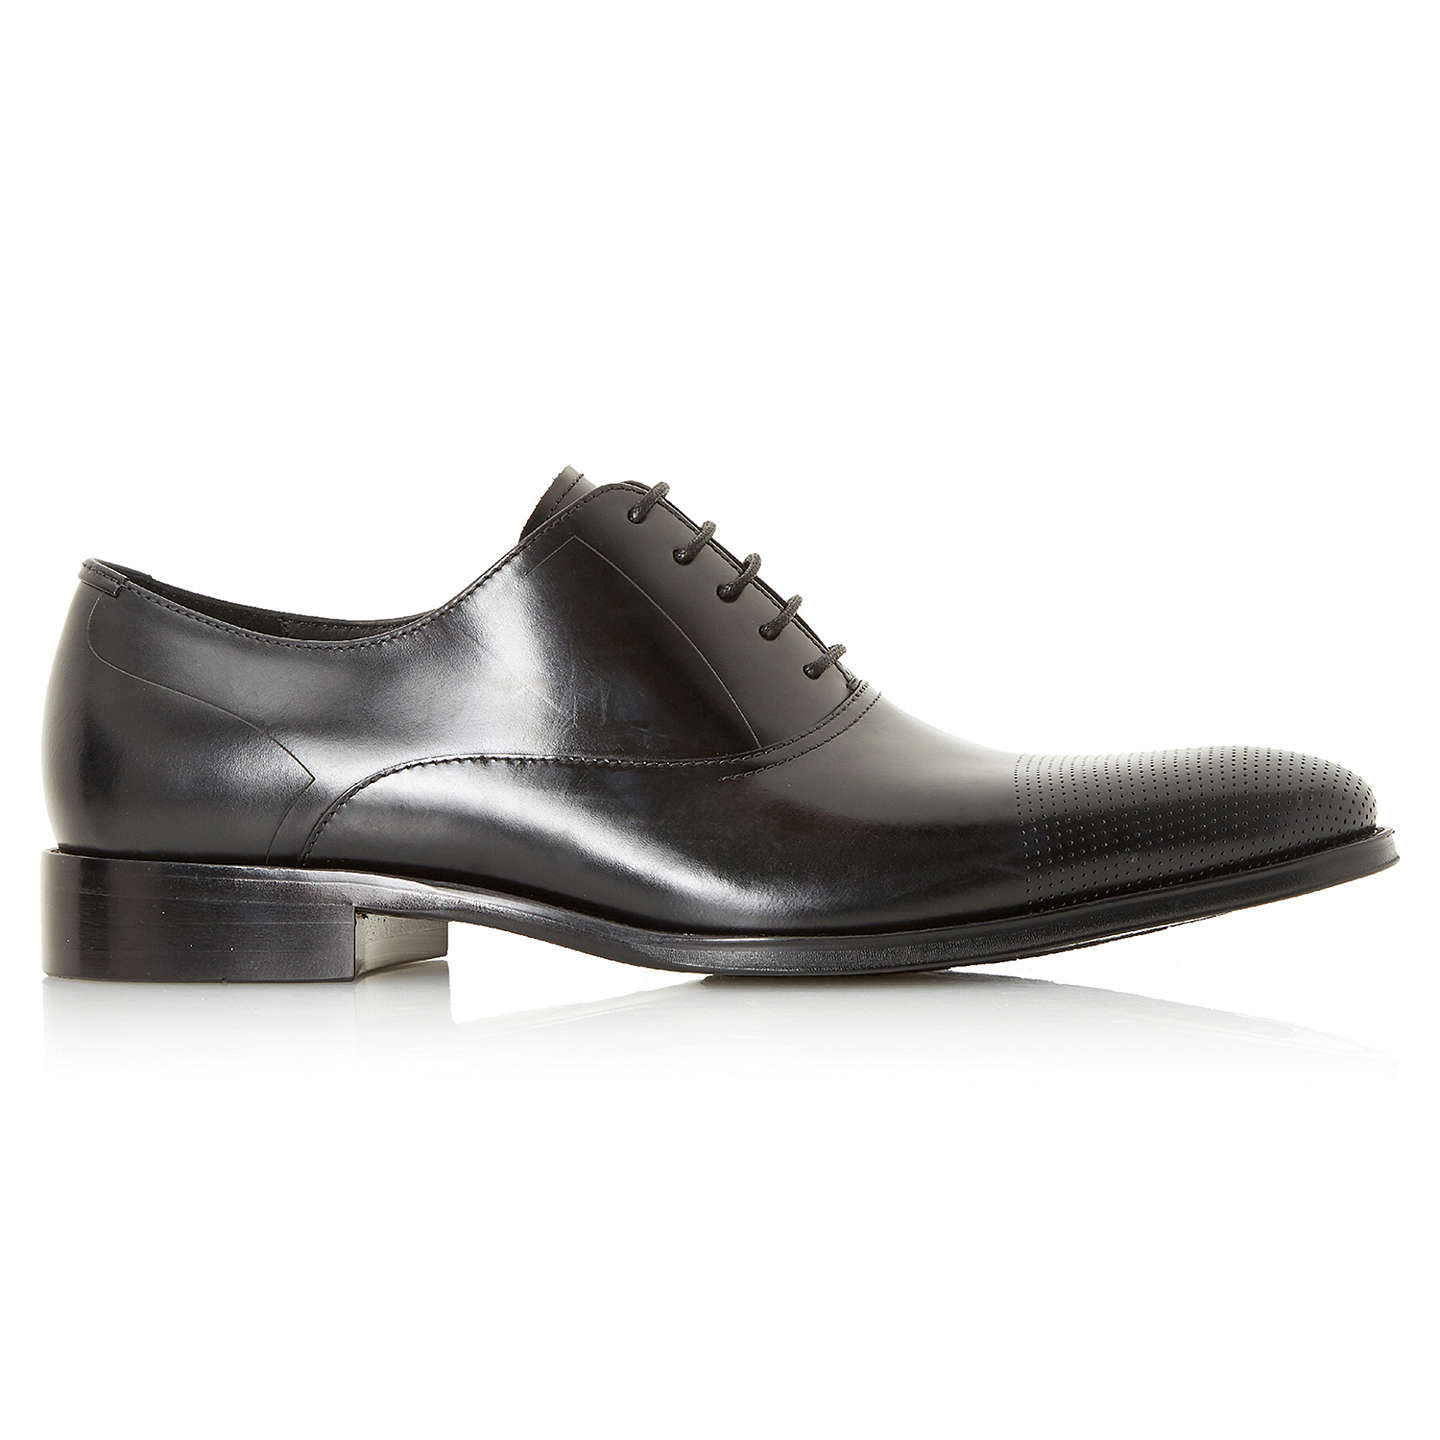 BuyDune Pottery Punch Hole Oxford Shoes, Black, 7 Online at johnlewis.com